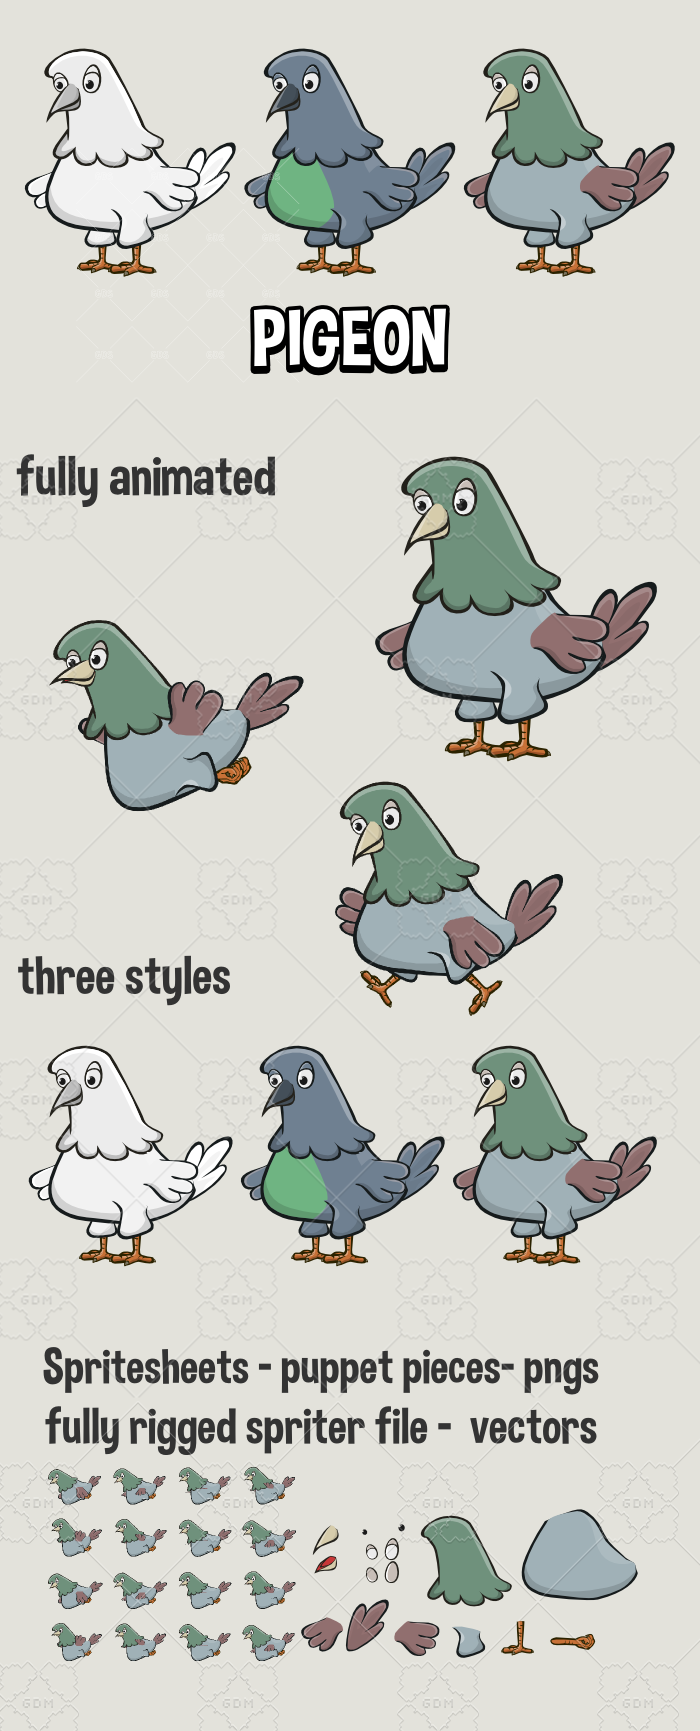 Animated pigeon